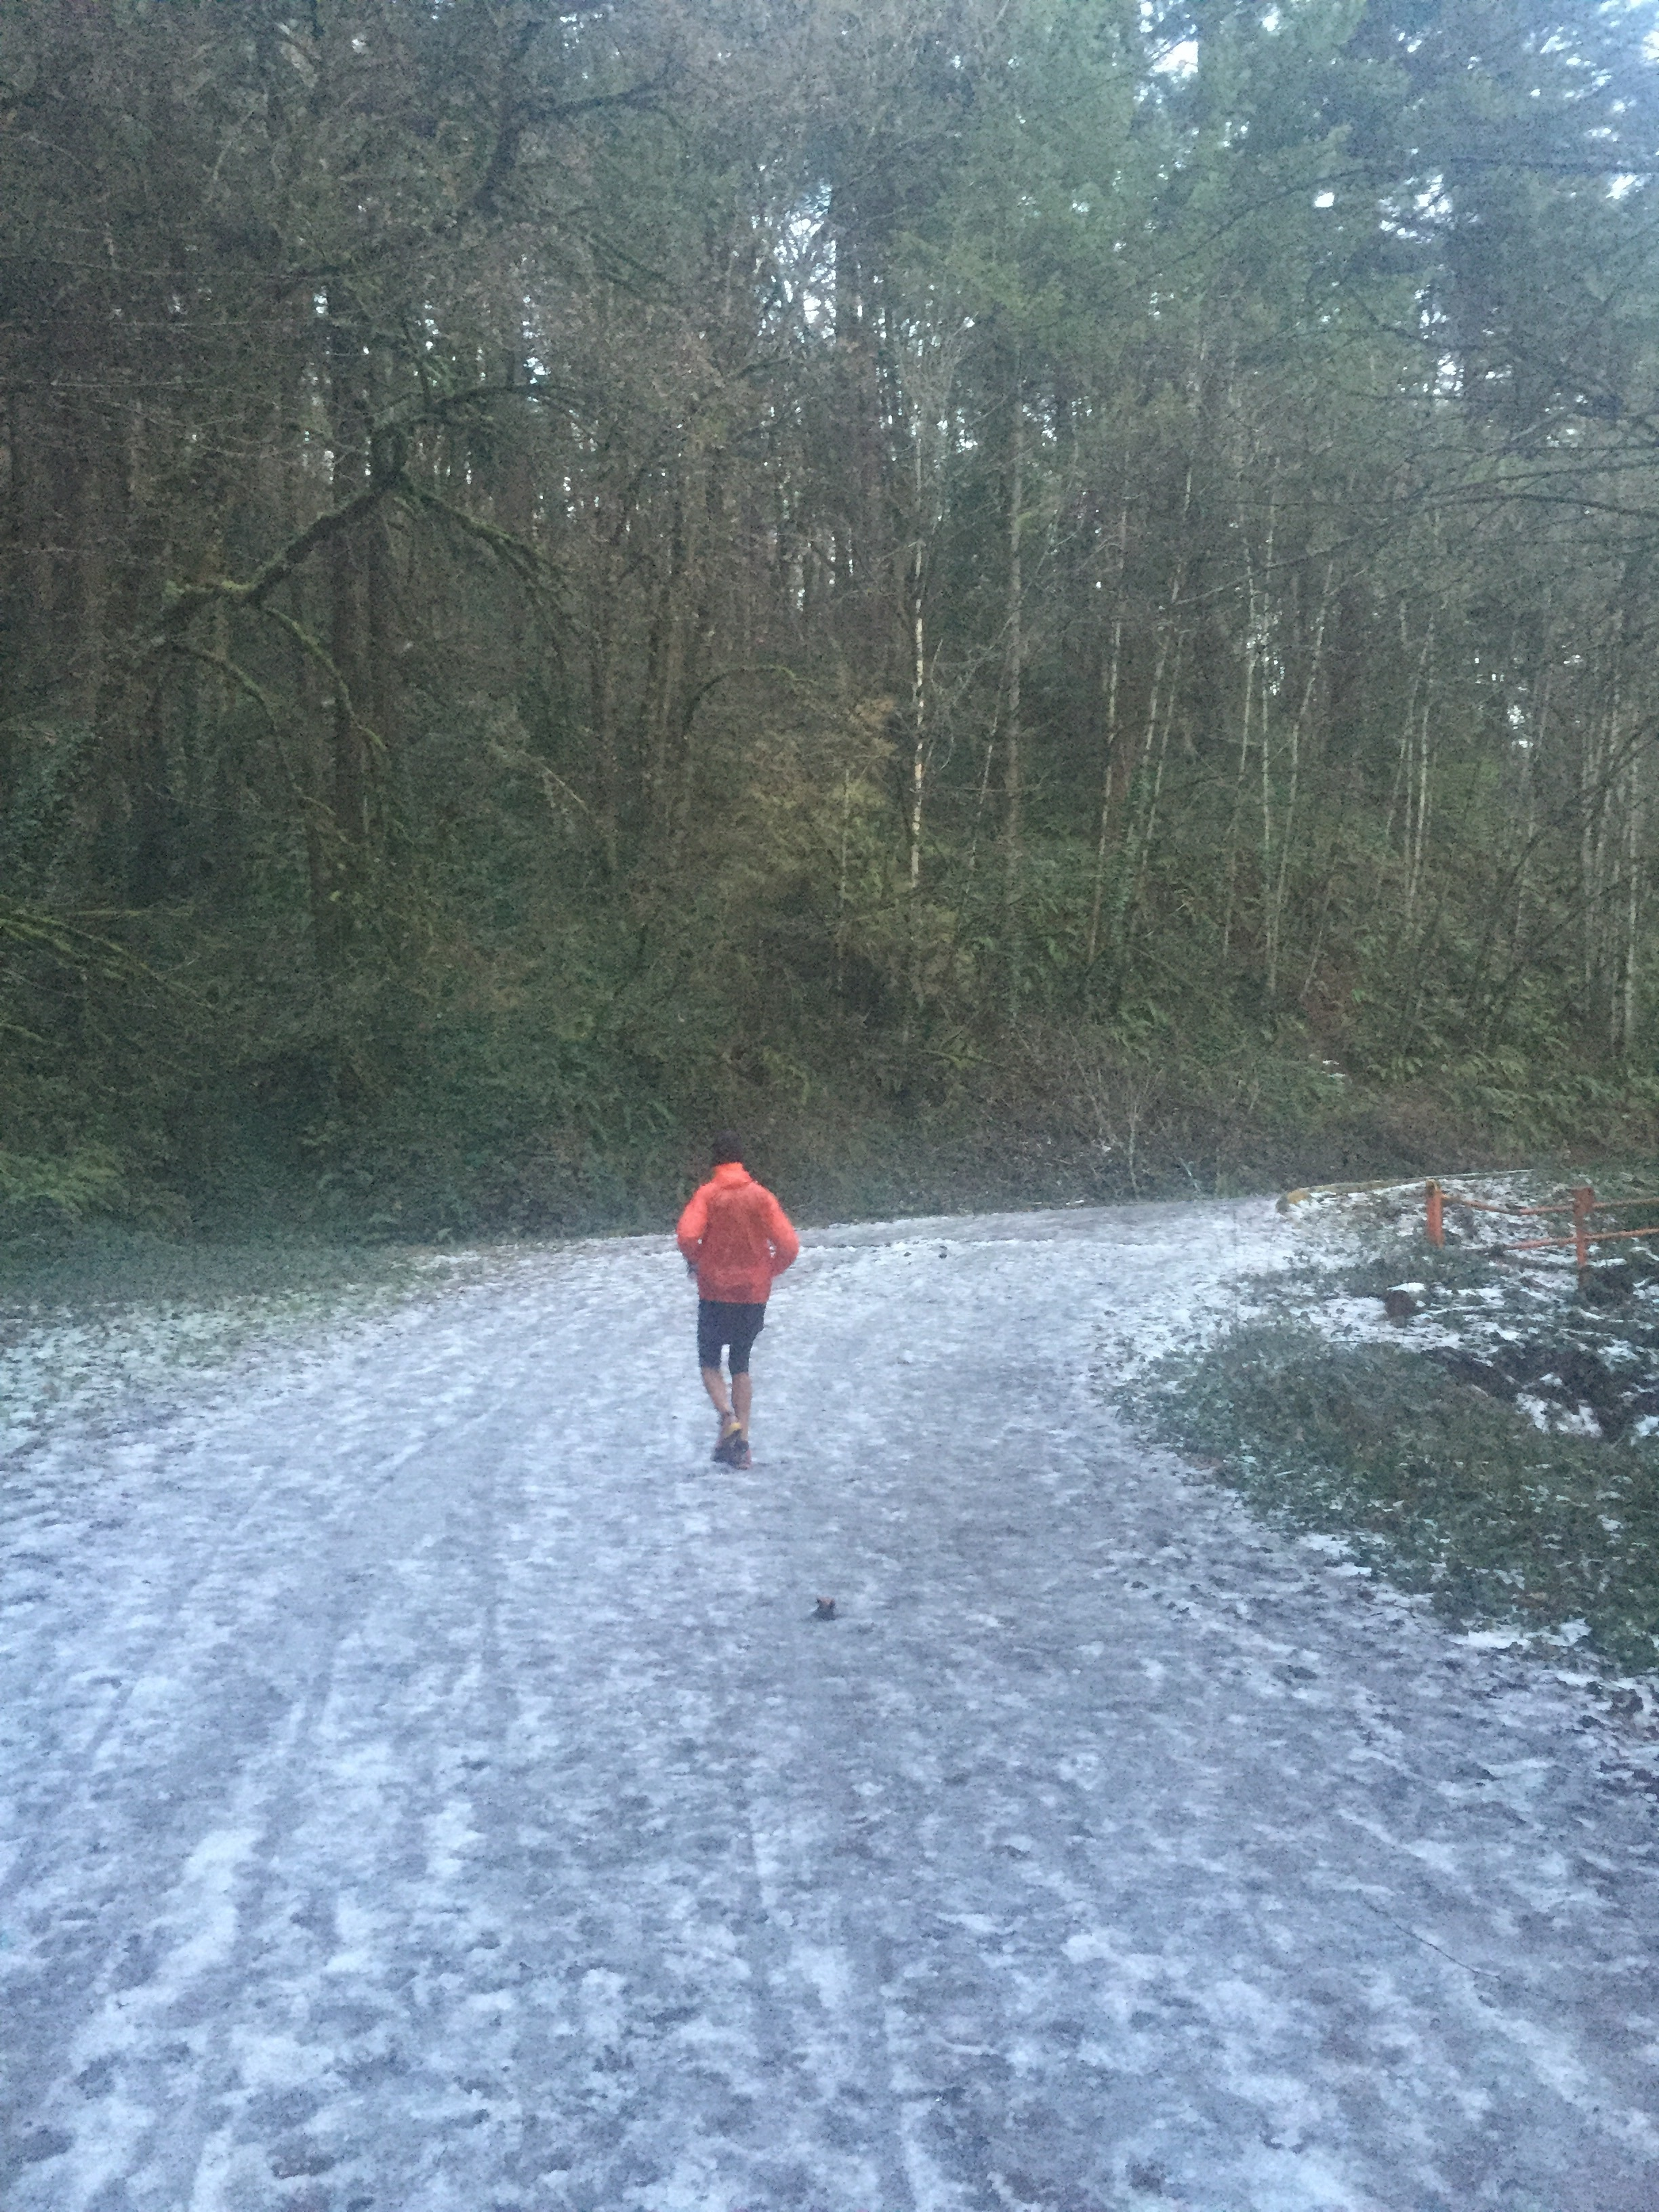 My dad getting it done in snowy Portland, OR. We're SoCal boys, so the snow/ice (mainly ice) was crazy for us!